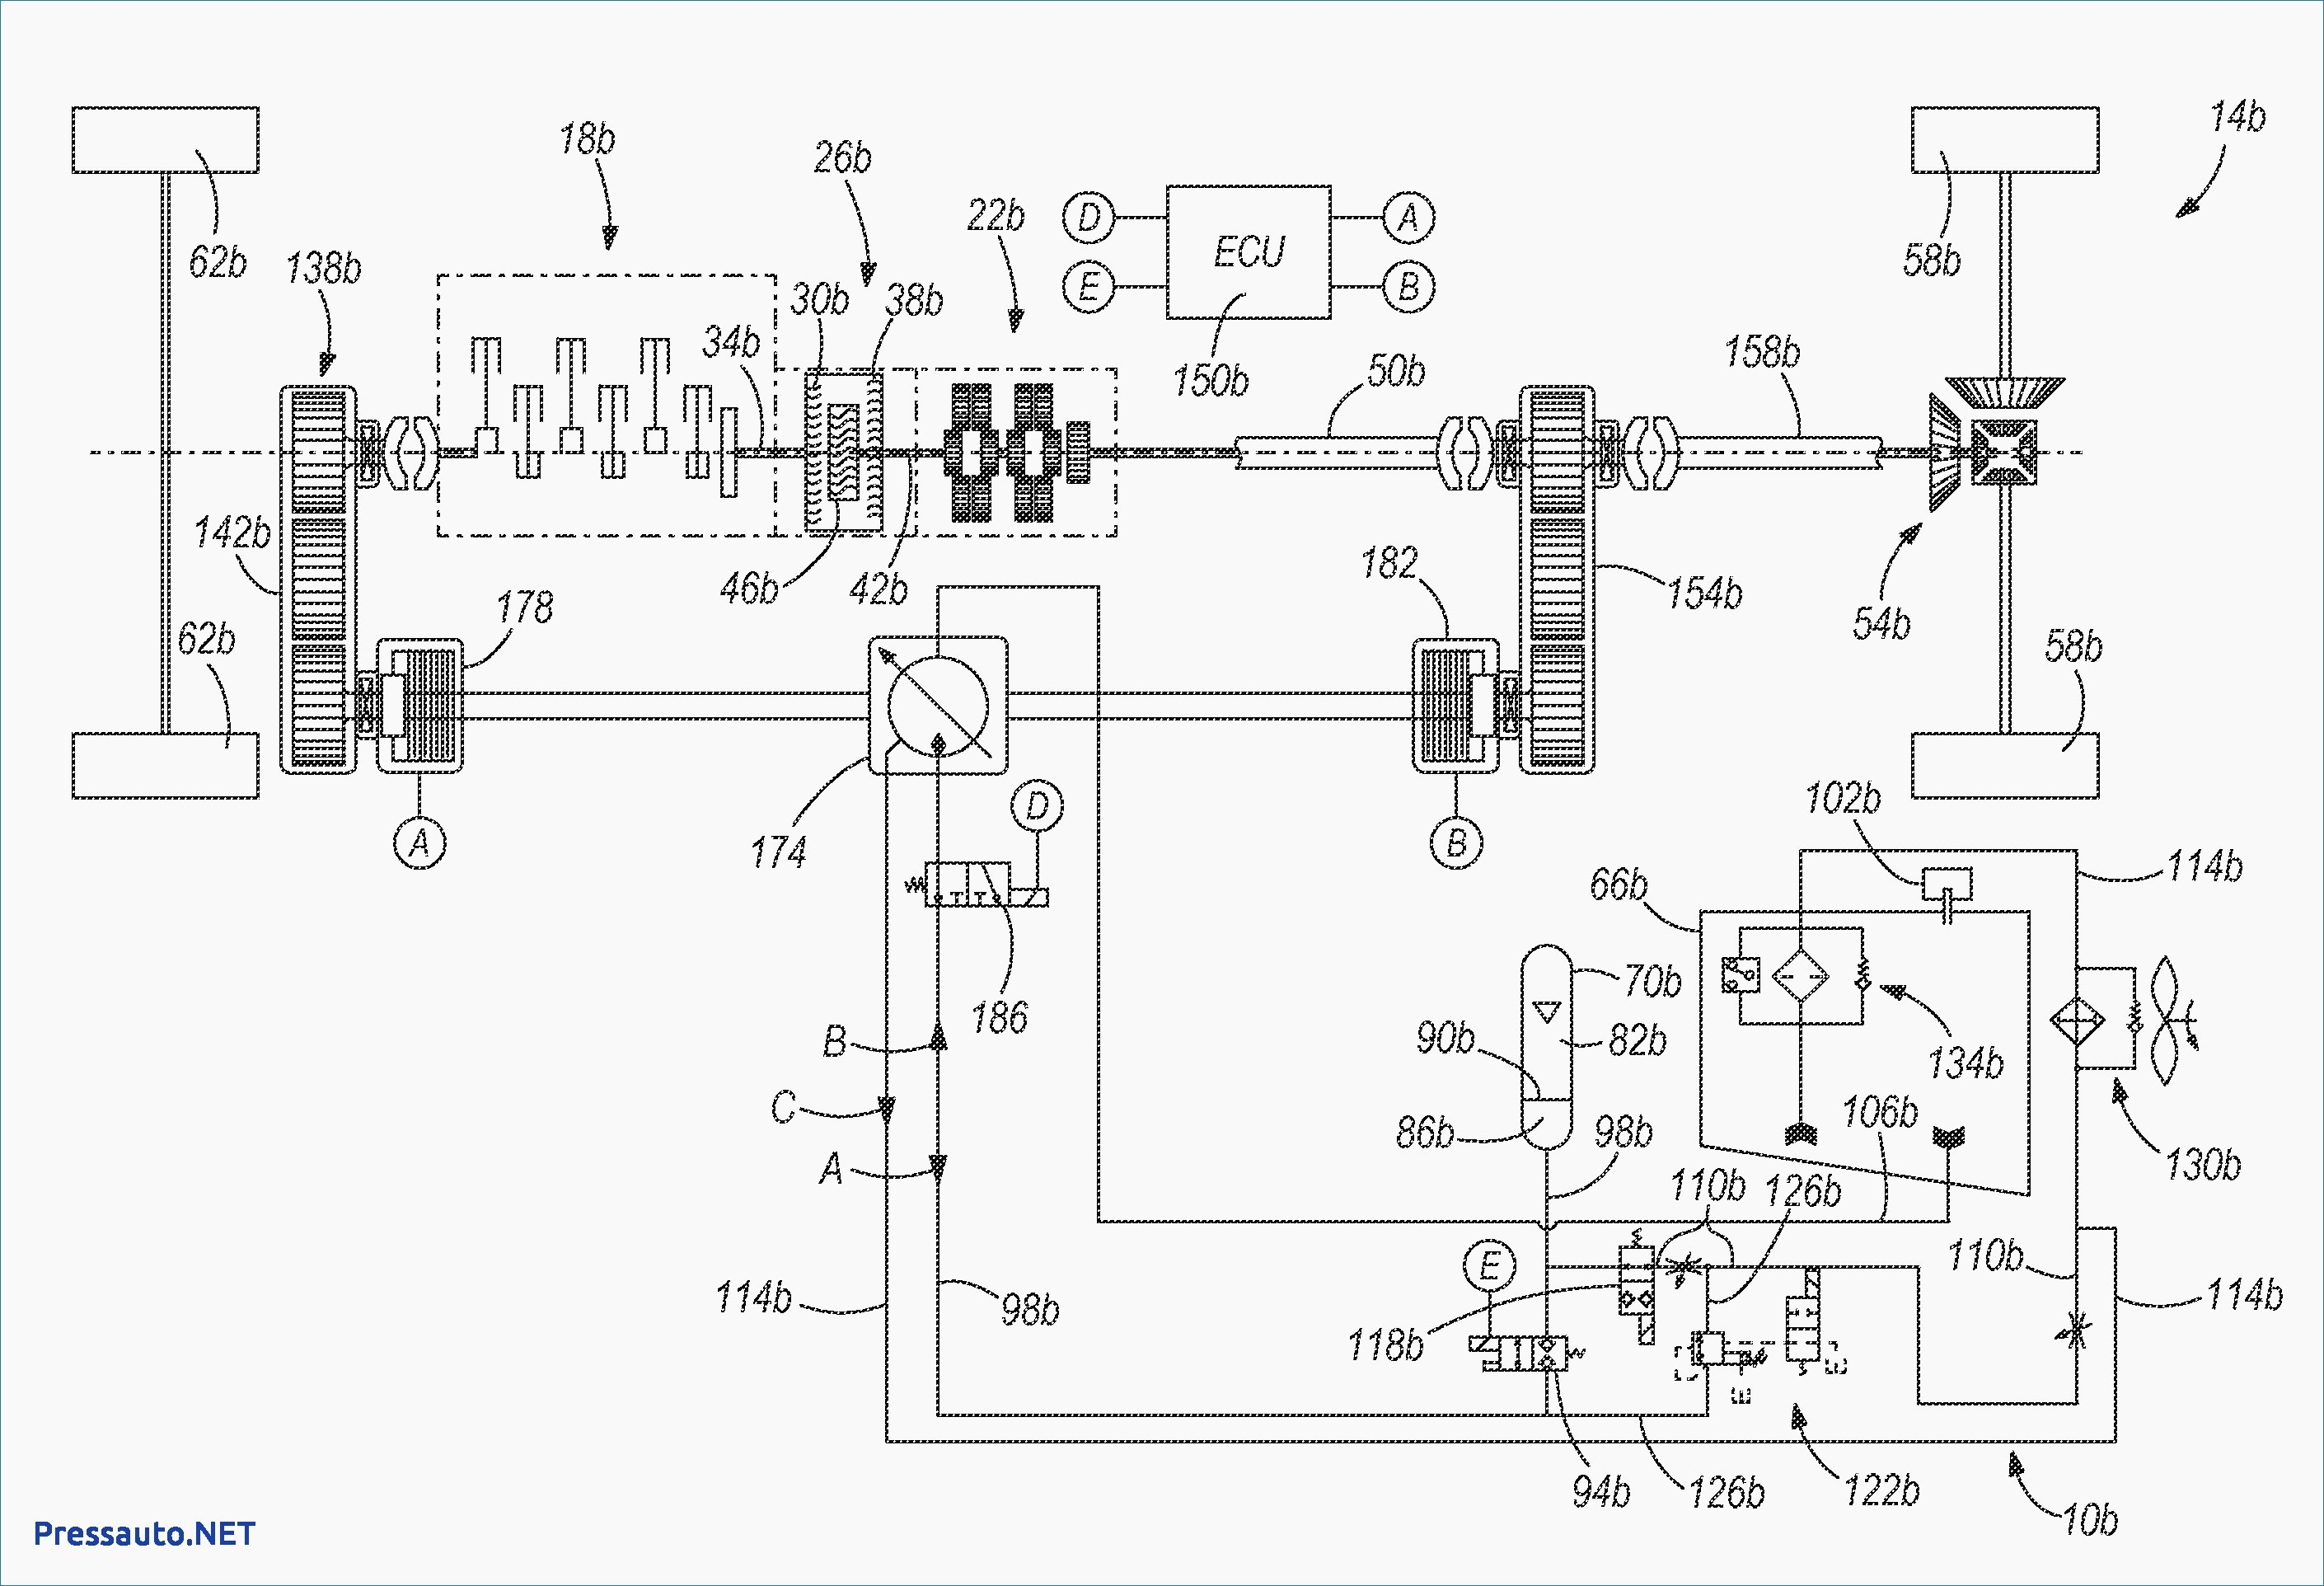 Mack Truck Engine ke Wiring Diagram | Wiring Diagram Database on mack truck engine, mack truck fuse, mack truck wiring diagram pdf, mack rd688s wiring-diagram, mack truck battery wiring diagram, mack truck fuel system diagram, mack truck gauges, mack truck brake light, mack truck controls, mack truck pickup, mack truck air line diagram, mack fuse box diagram, mack truck knock sensor, mack truck parts schematic, mack truck maintenance, mack truck air compressor, mack truck parts list, mack truck electrical, mack truck wiring harness, mack truck service manuals,